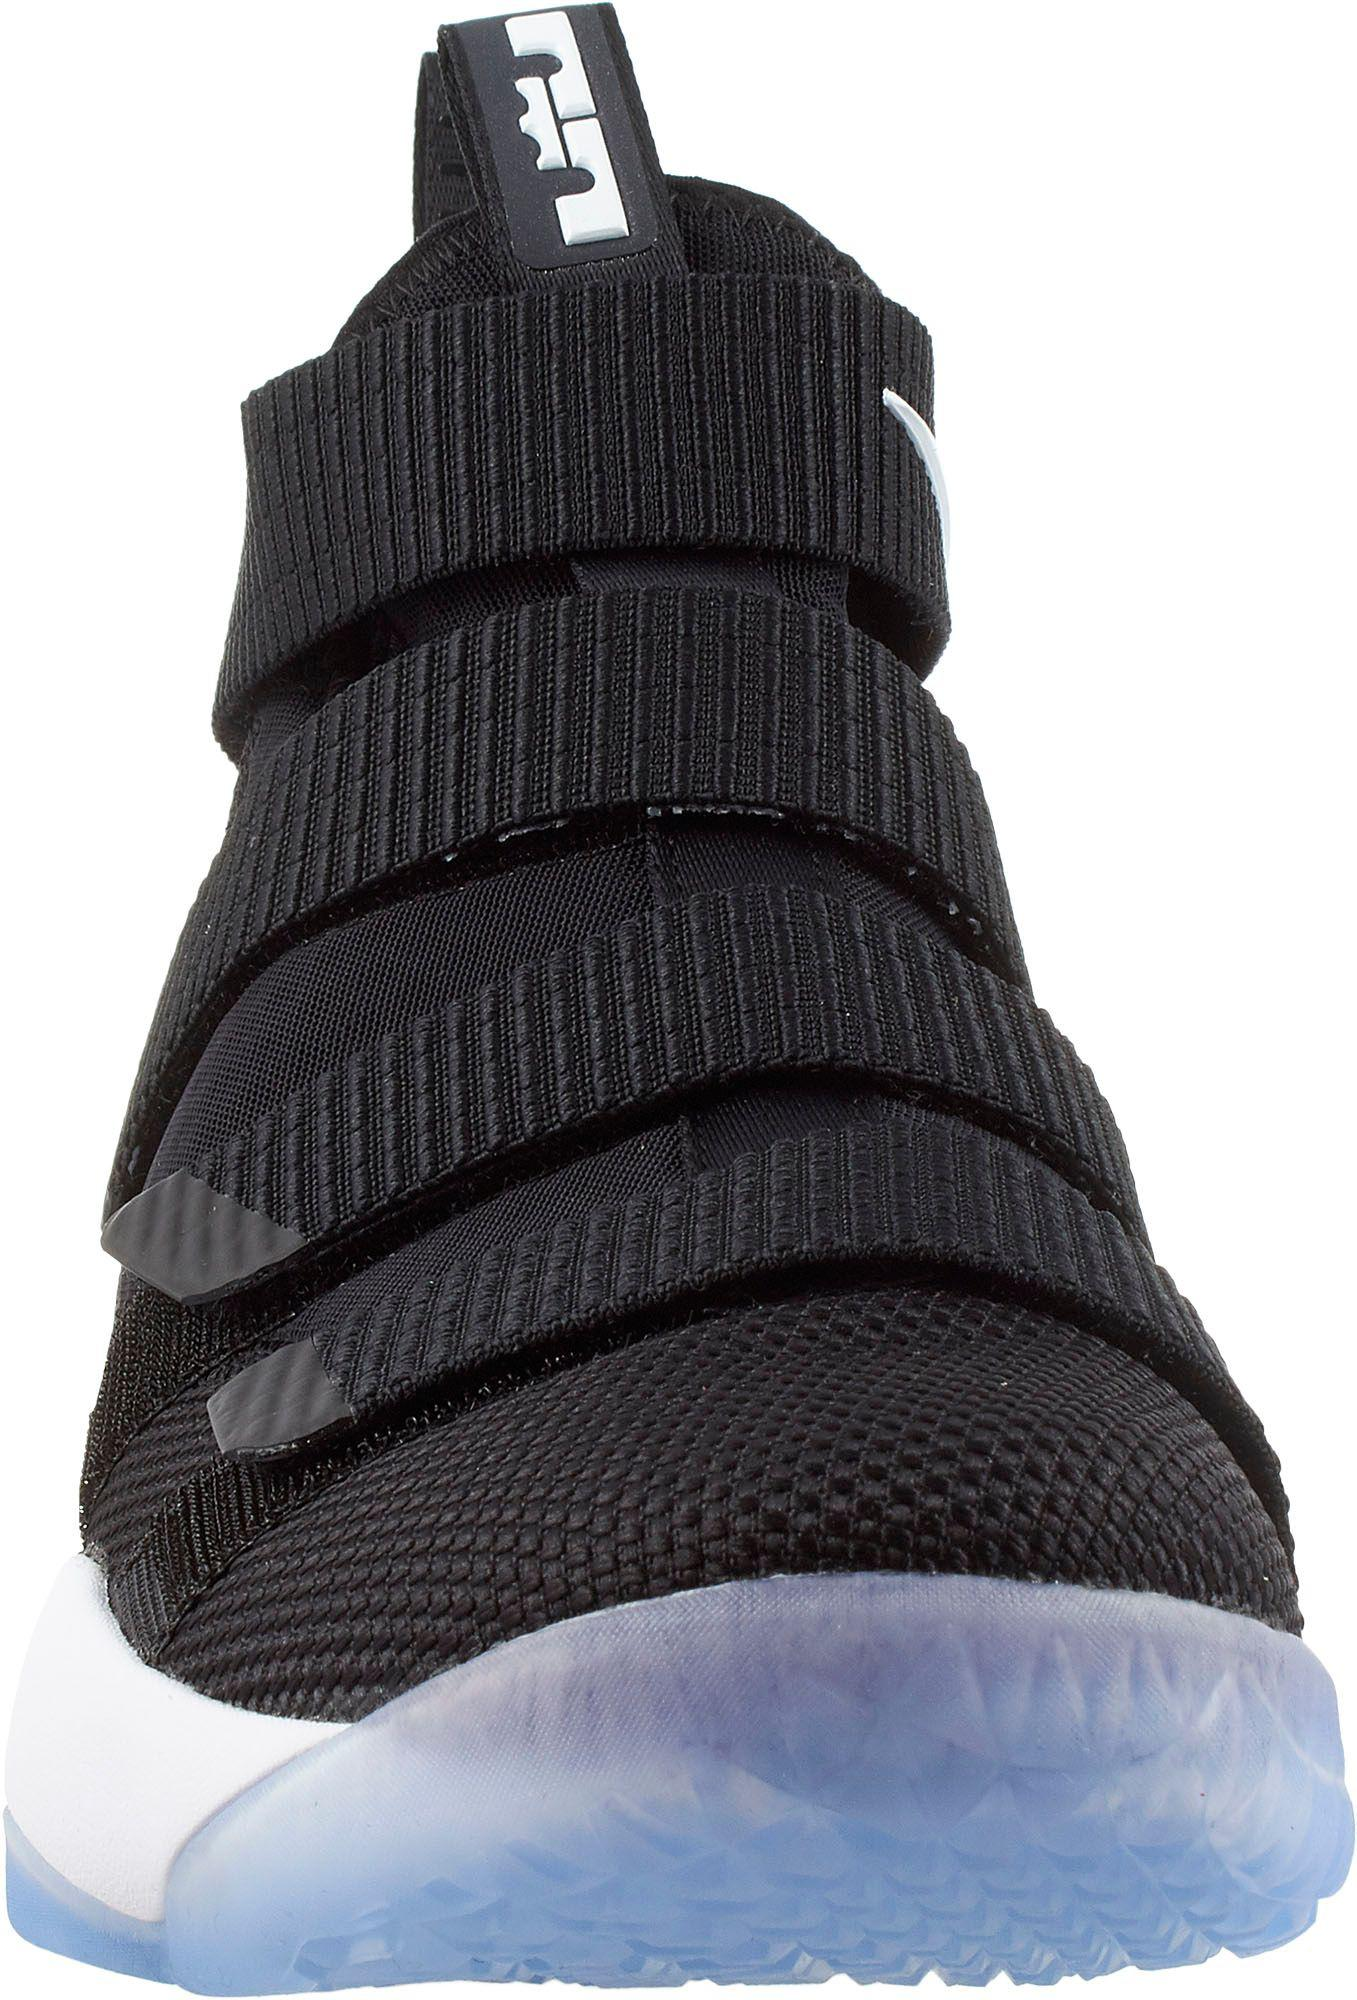 2f0ec940120 Lyst - Nike Zoom Lebron Soldier Xi Basketball Shoes in Black for Men